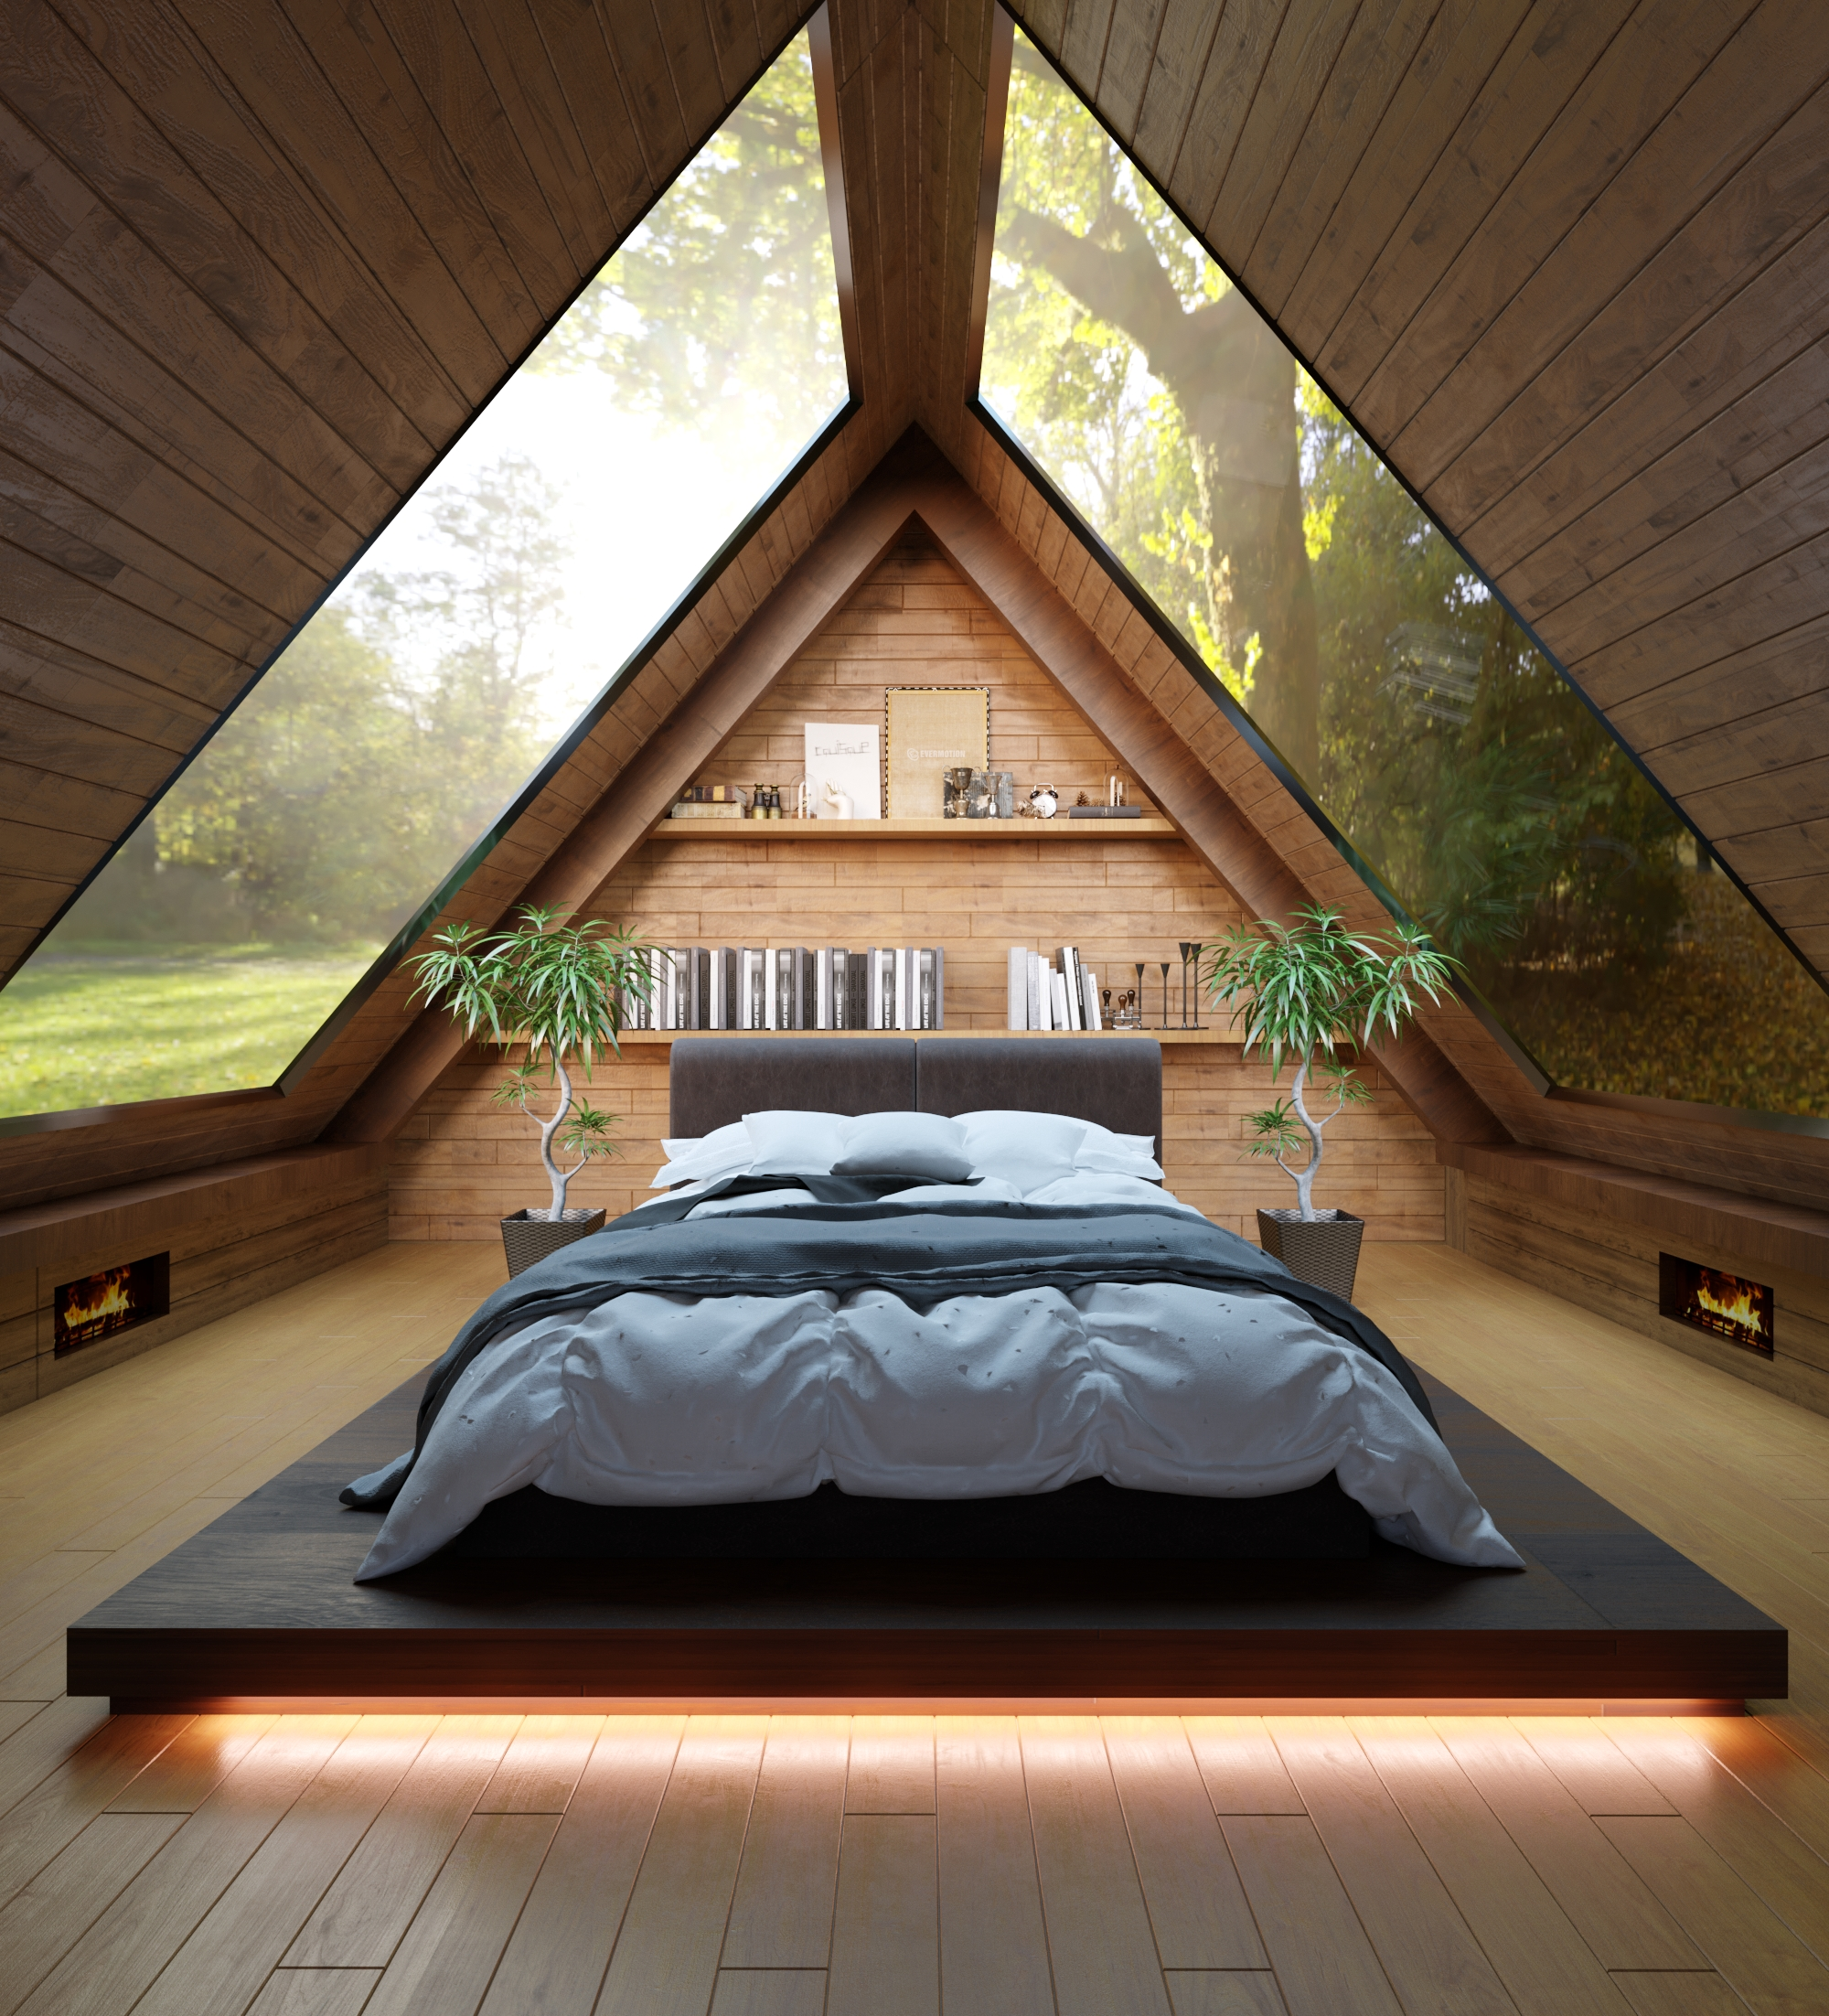 Triangular Bedroom Render